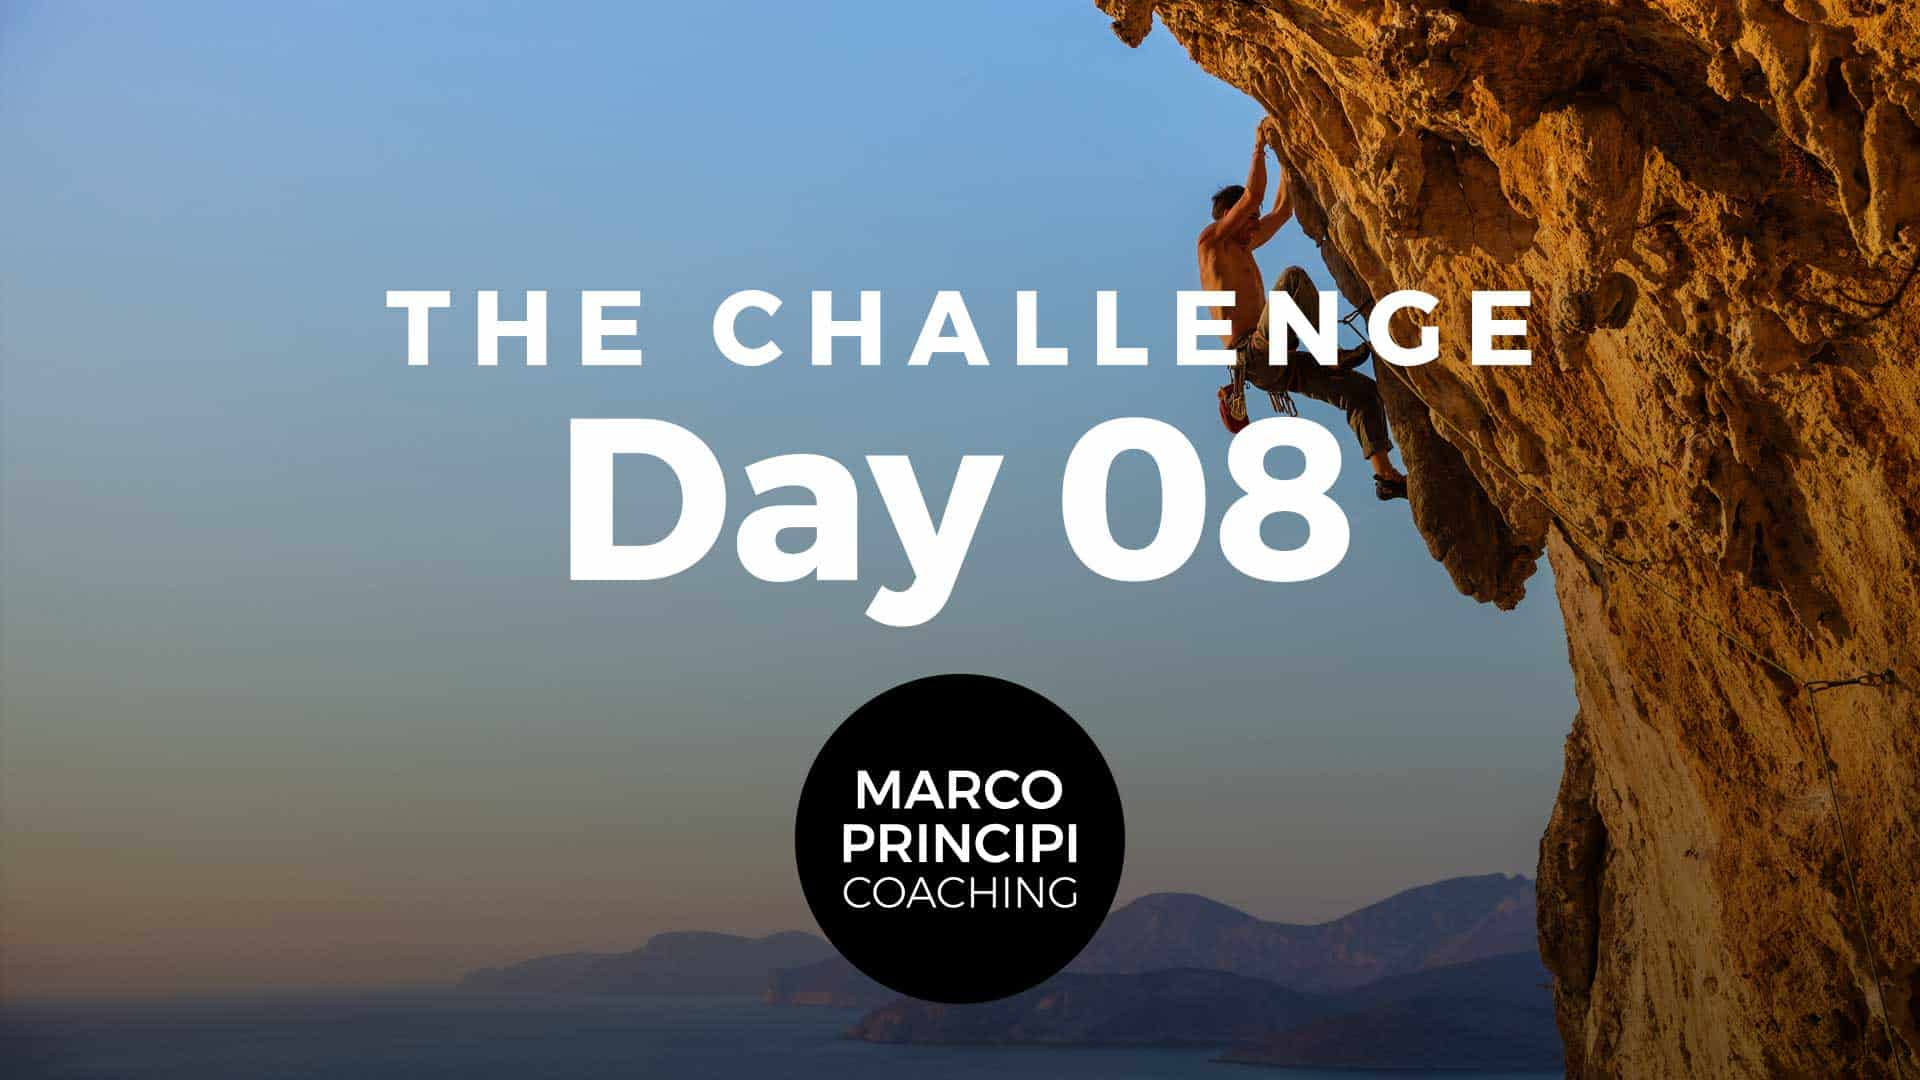 Marco Principi YT Cover The Challenge Day 008